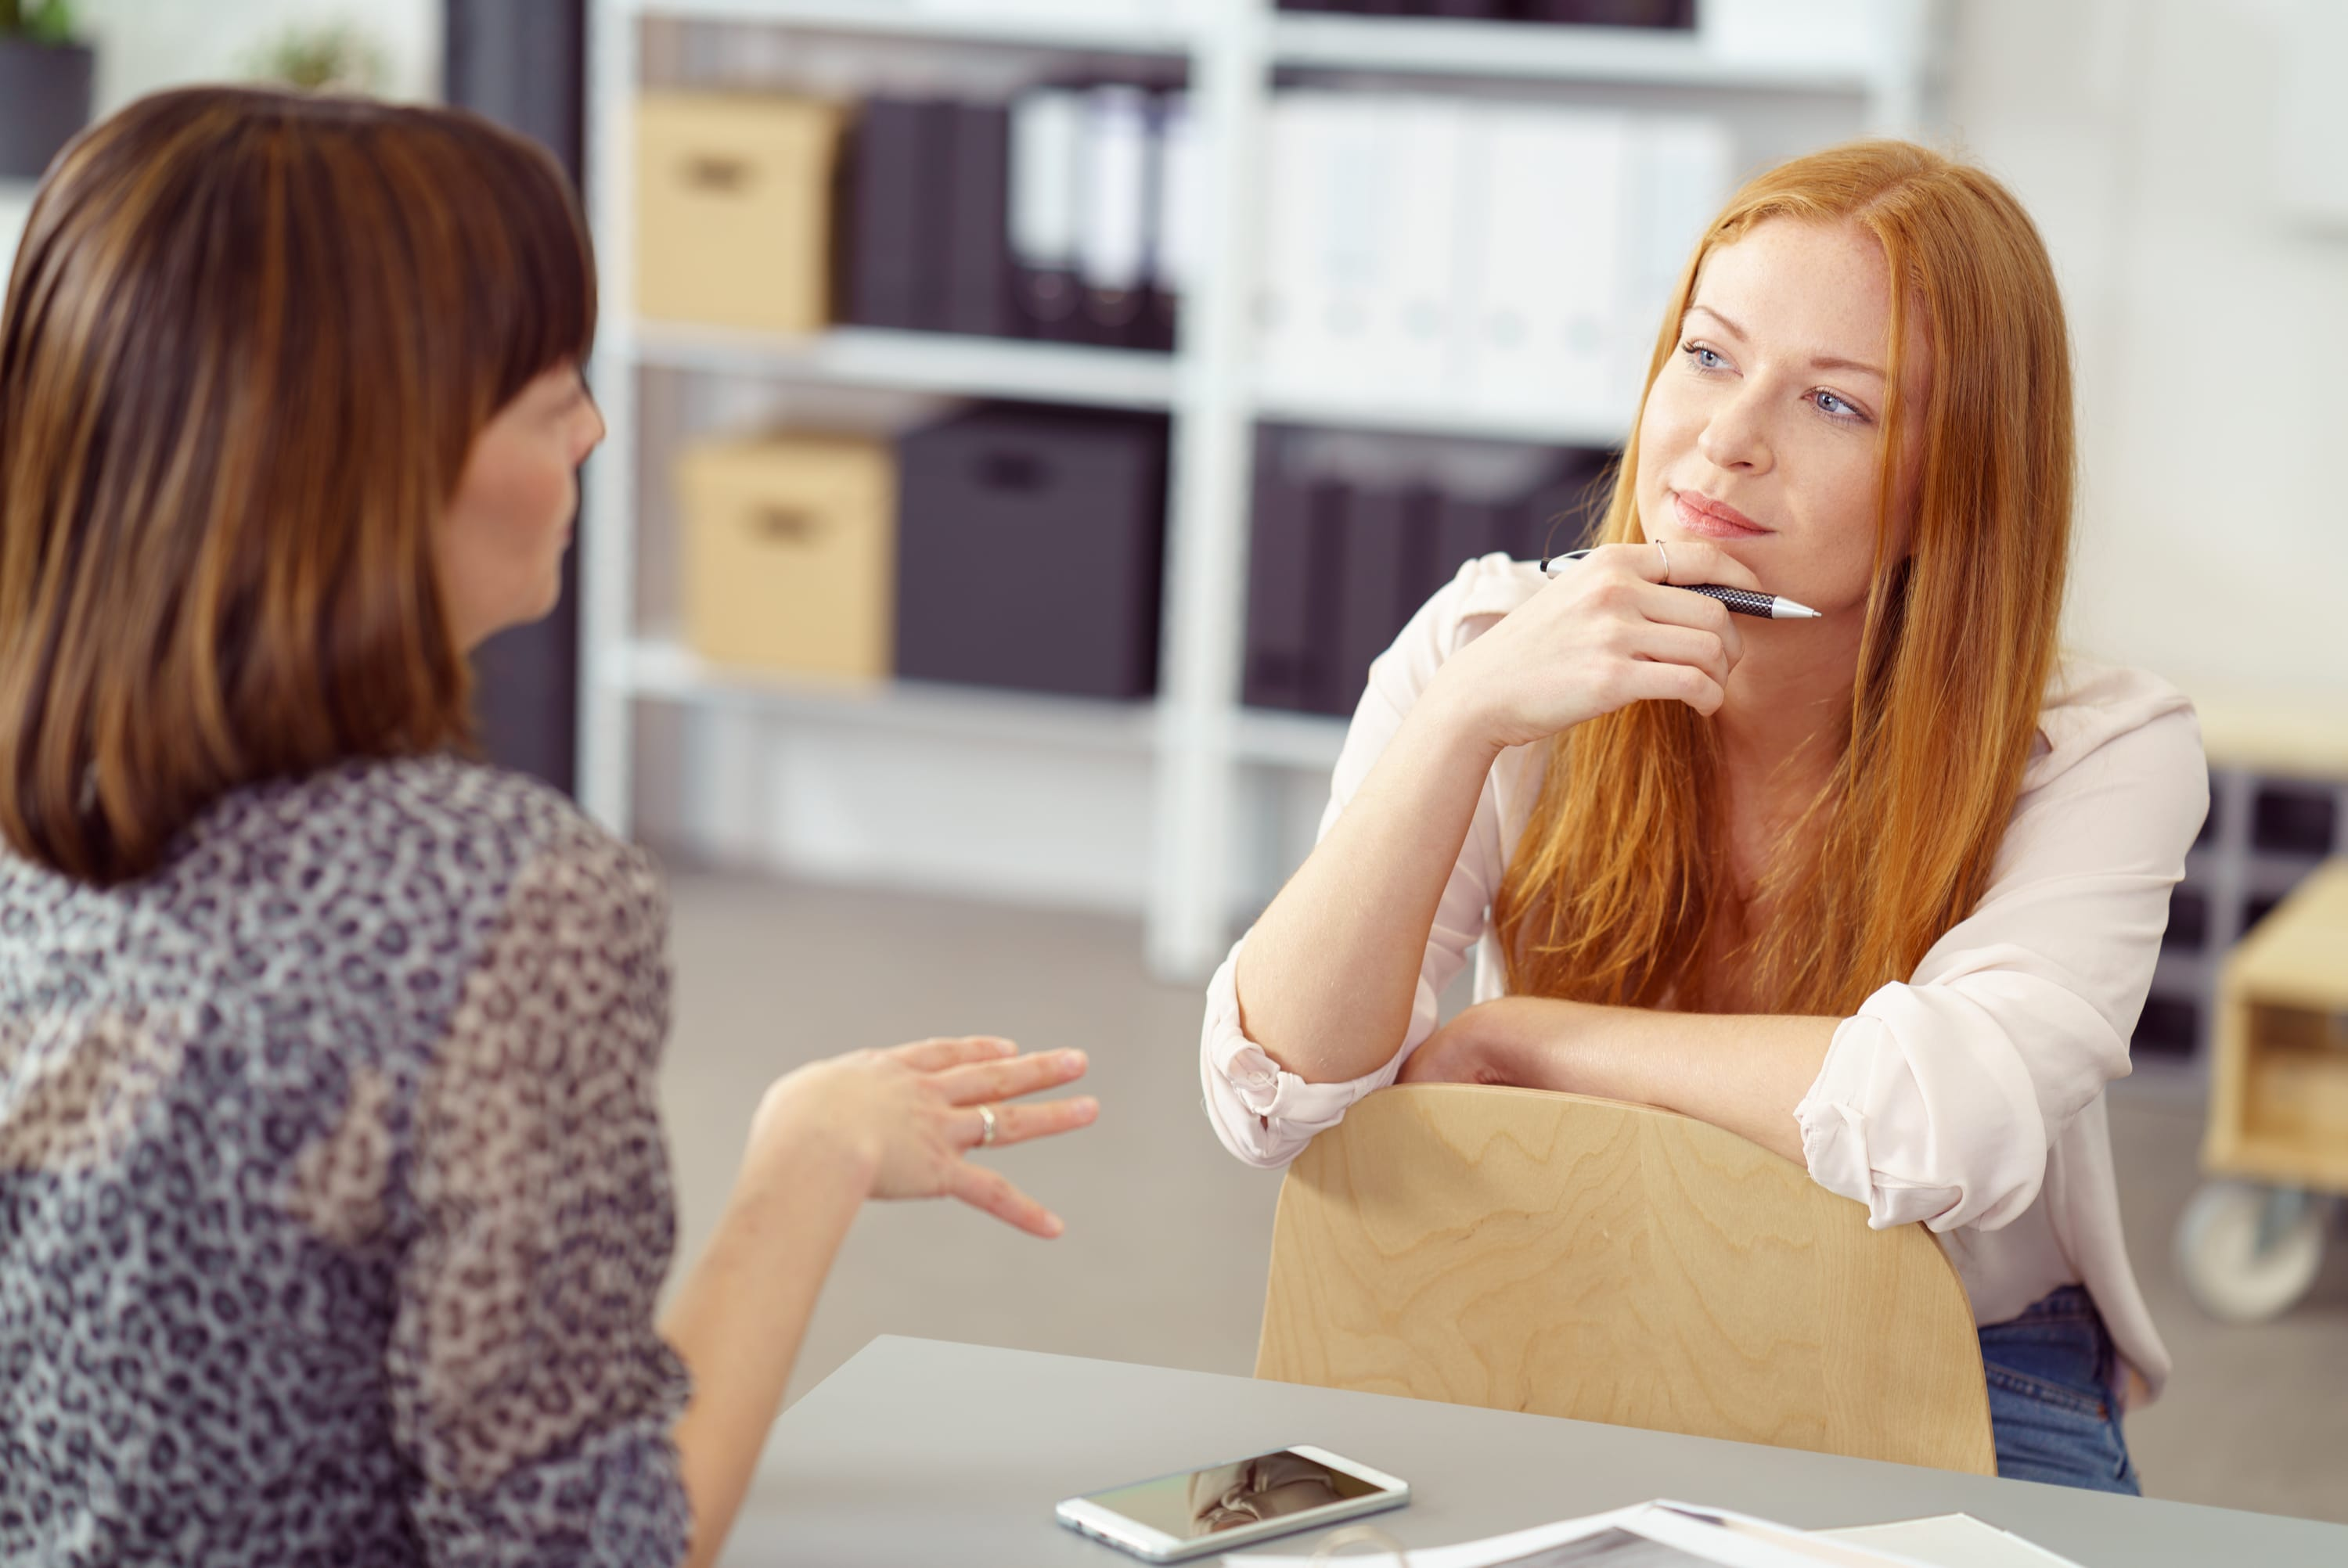 10 Tips To Develop Effective Workplace Communication Skills